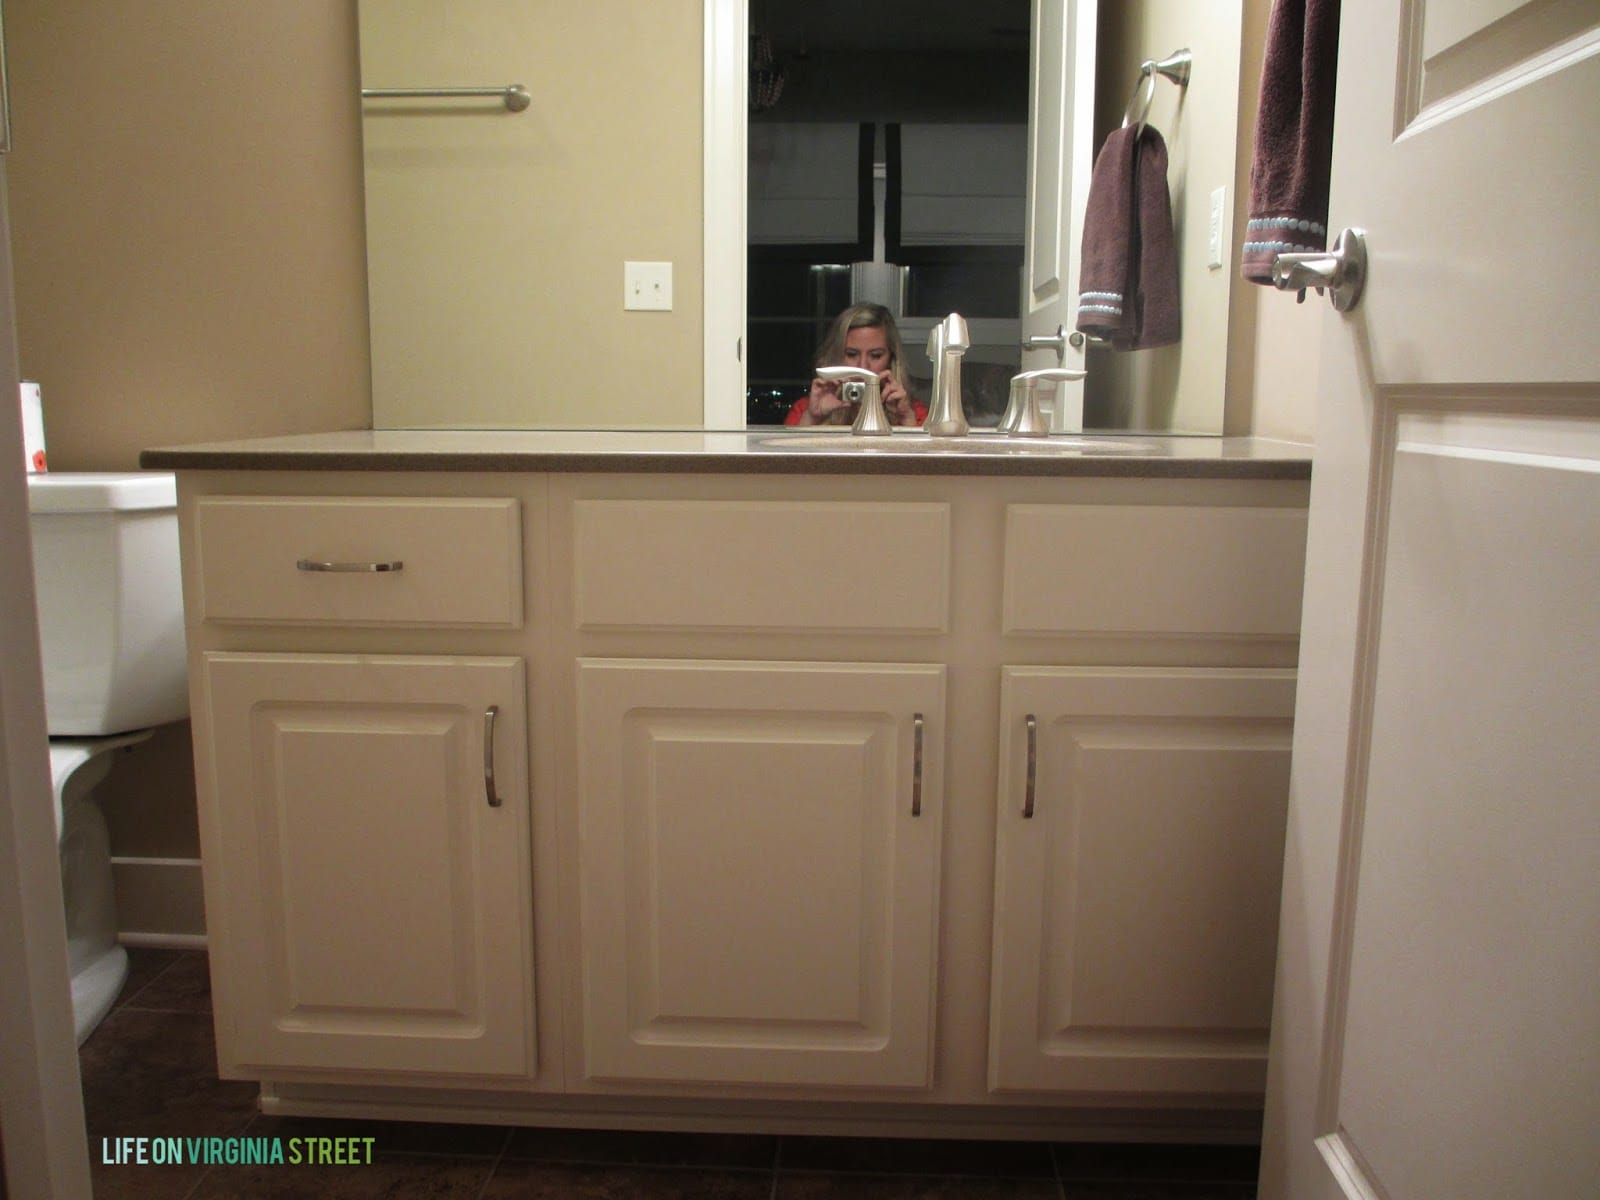 Painted Bathroom Cabinets Bathroom Vanity Makeover W Country Chic Paint Life On Virginia